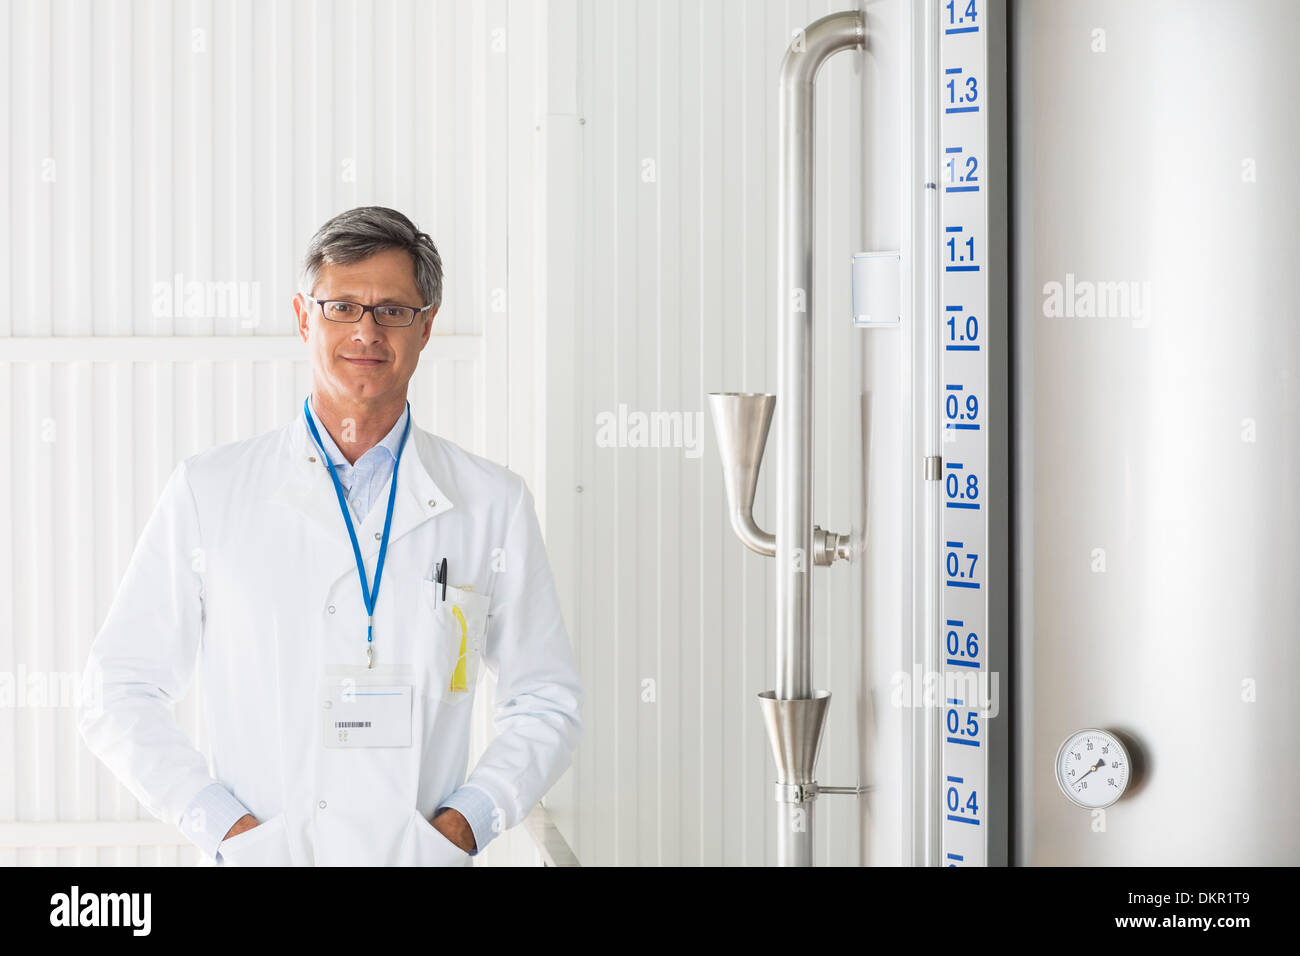 Scientist smiling in food processing plant Stock Photo